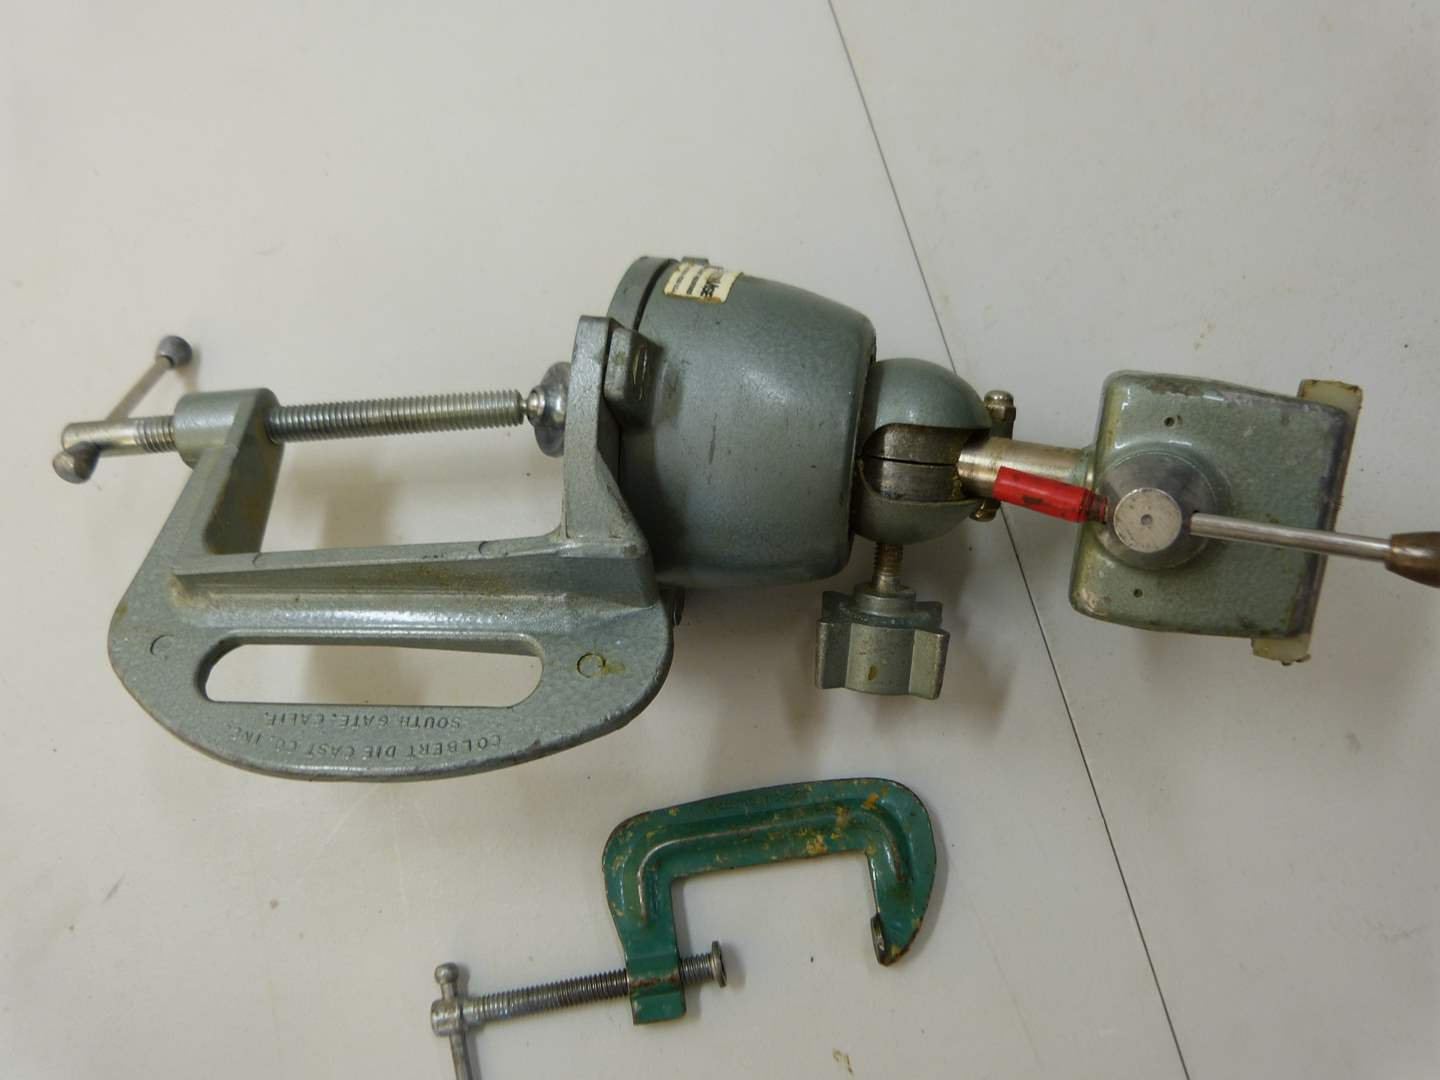 Lot # 292  Specialty Pana Vise Model 311